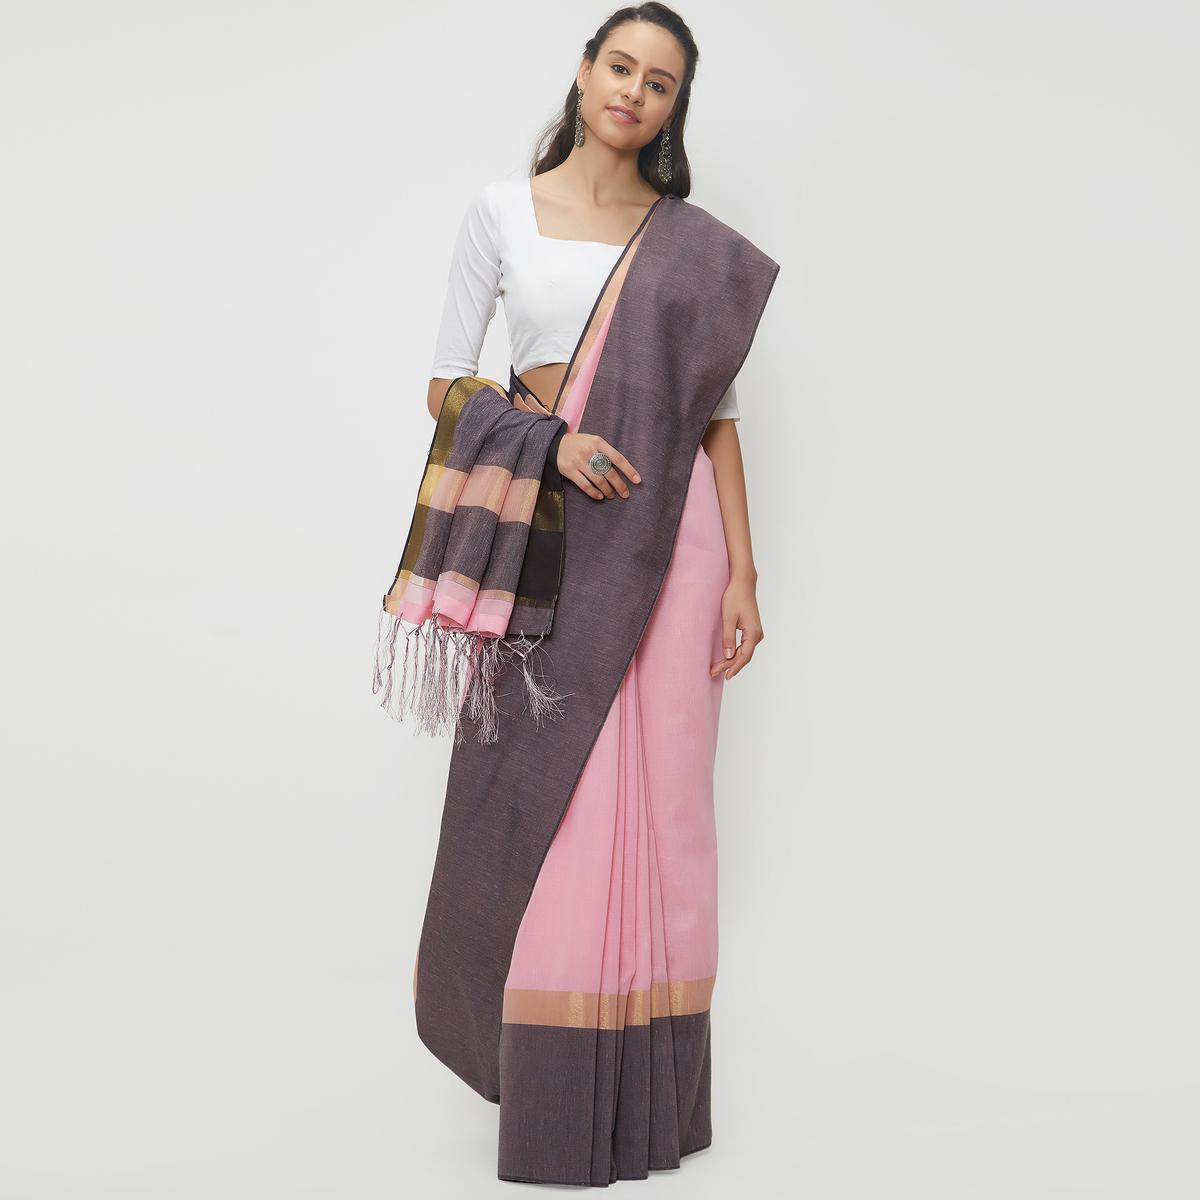 Adorable Pink Colored Casual Wear Linen Saree With 2 Blouse Pieces